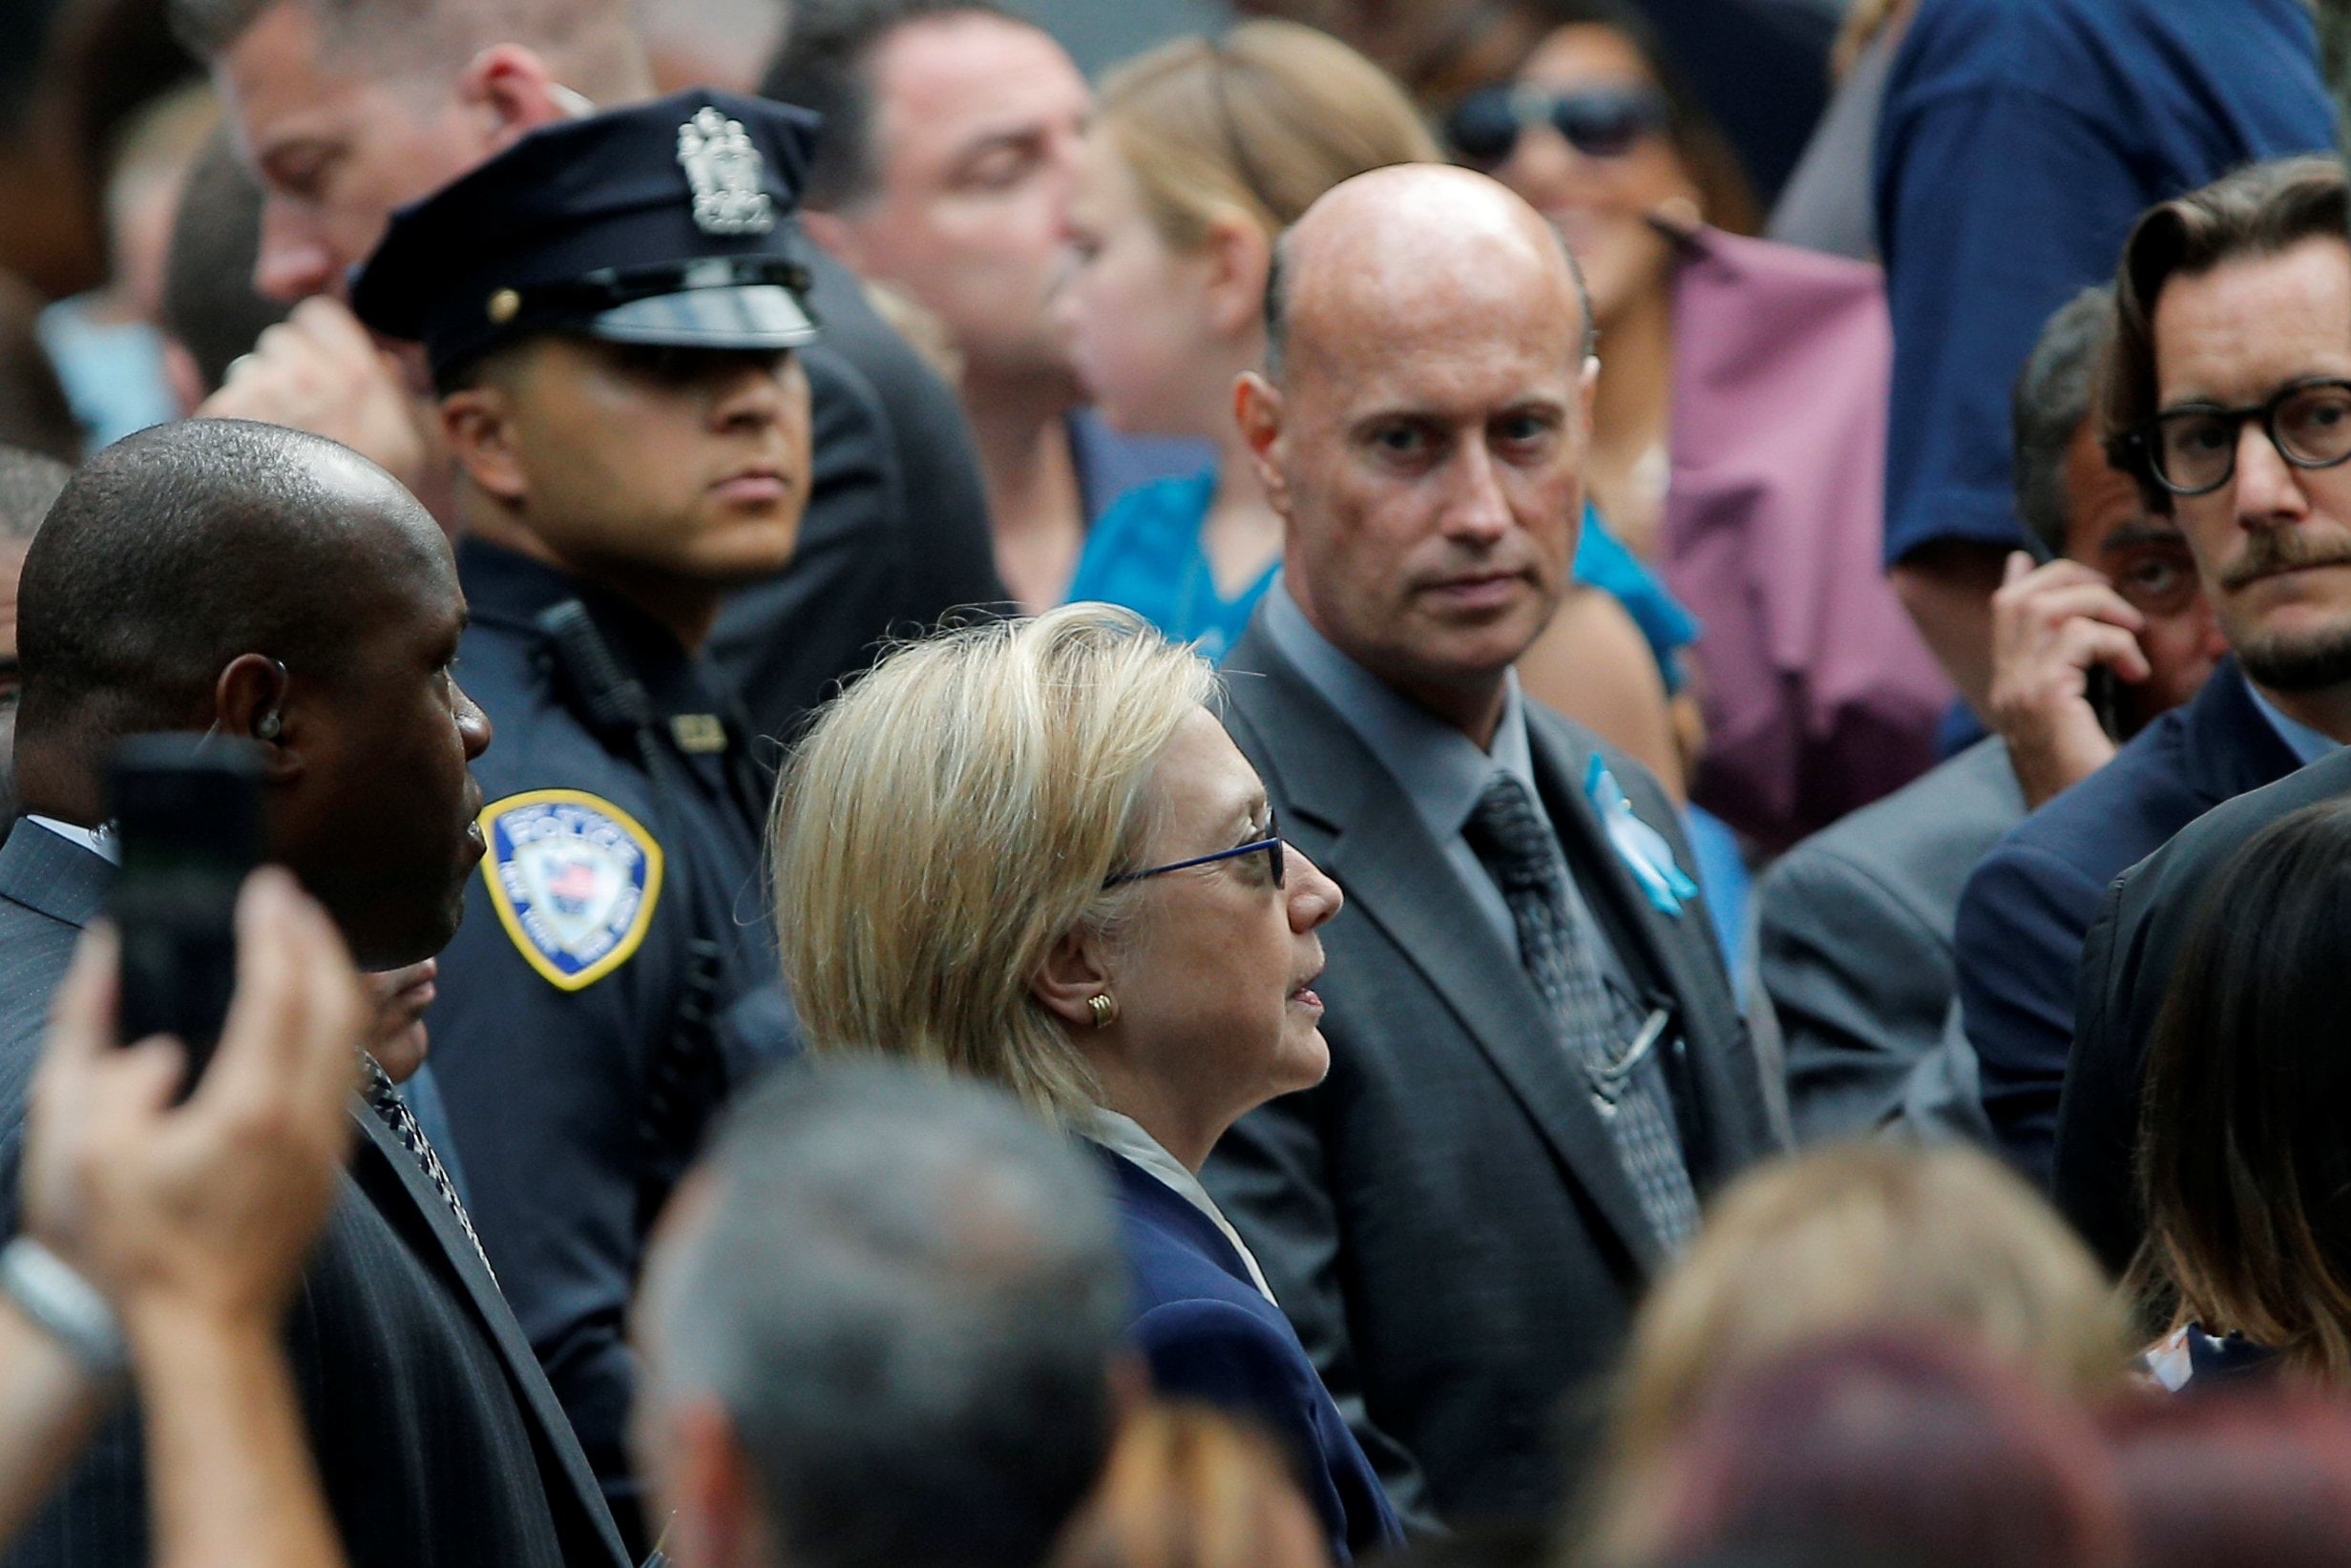 U.S. Democratic presidential candidate Hillary Clinton attends ceremonies to mark the 15th anniversary of the September 11 attacks at the National 9/11 Memorial in New York, New York, United States September 11, 2016. REUTERS/Brian Snyder